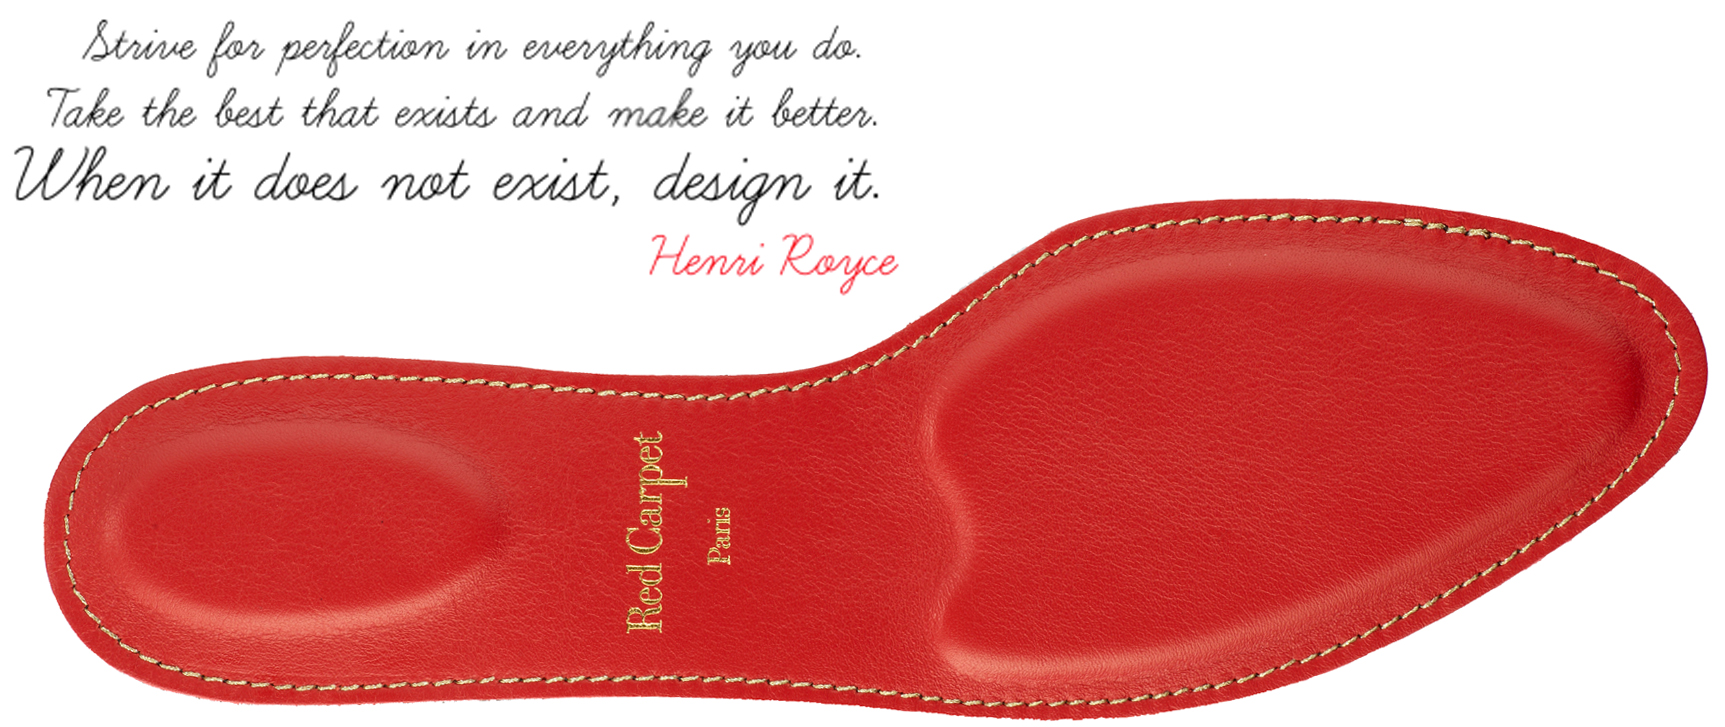 Red Carpet Paris Insoles Comfort And Glamour In High